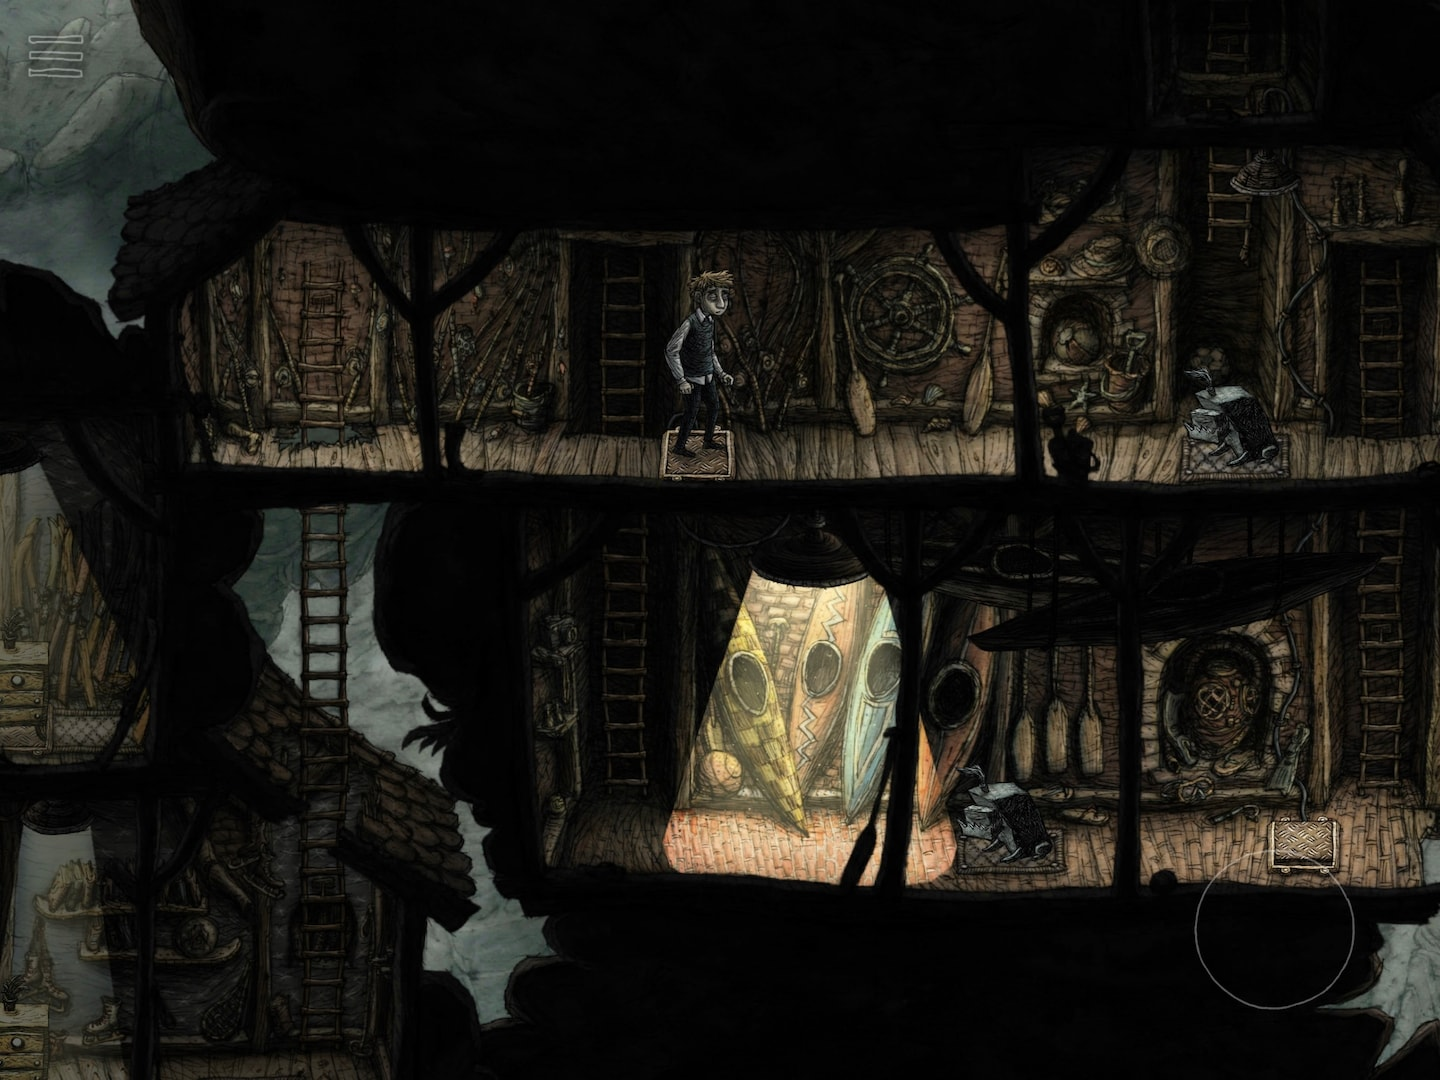 Creaks video game review: It might melt your brain, but it's beautiful and whimsical